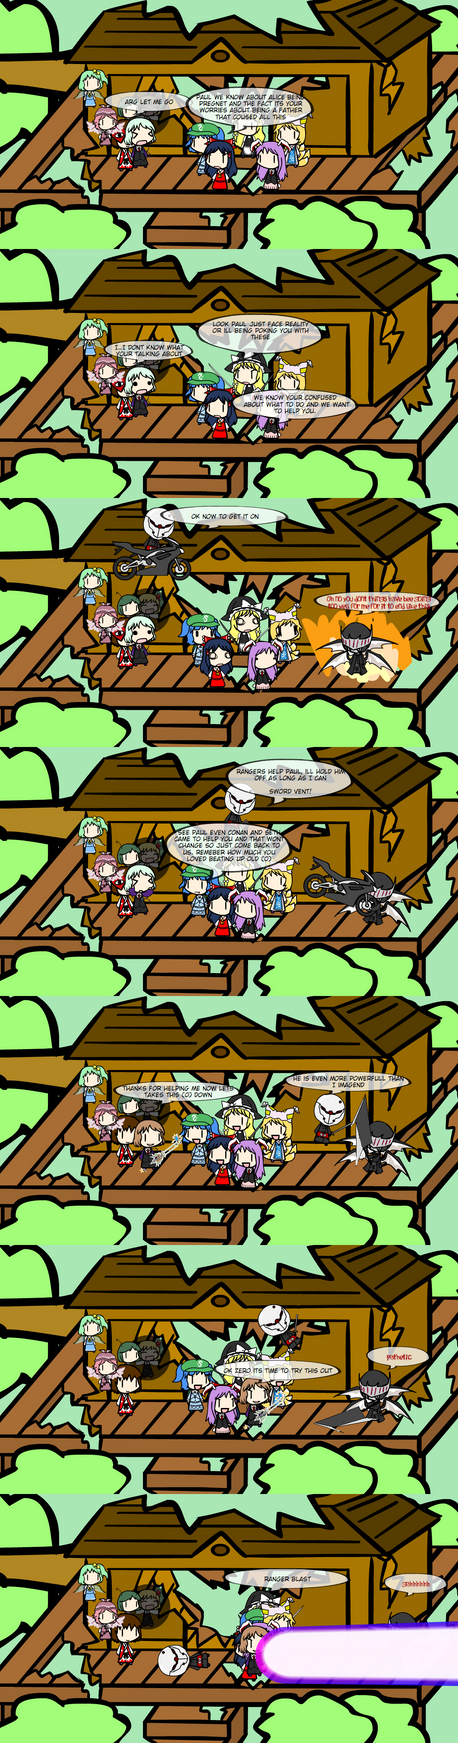 Touhou rangers 15 by chaosoverlordz on deviantart for Chaos overlords